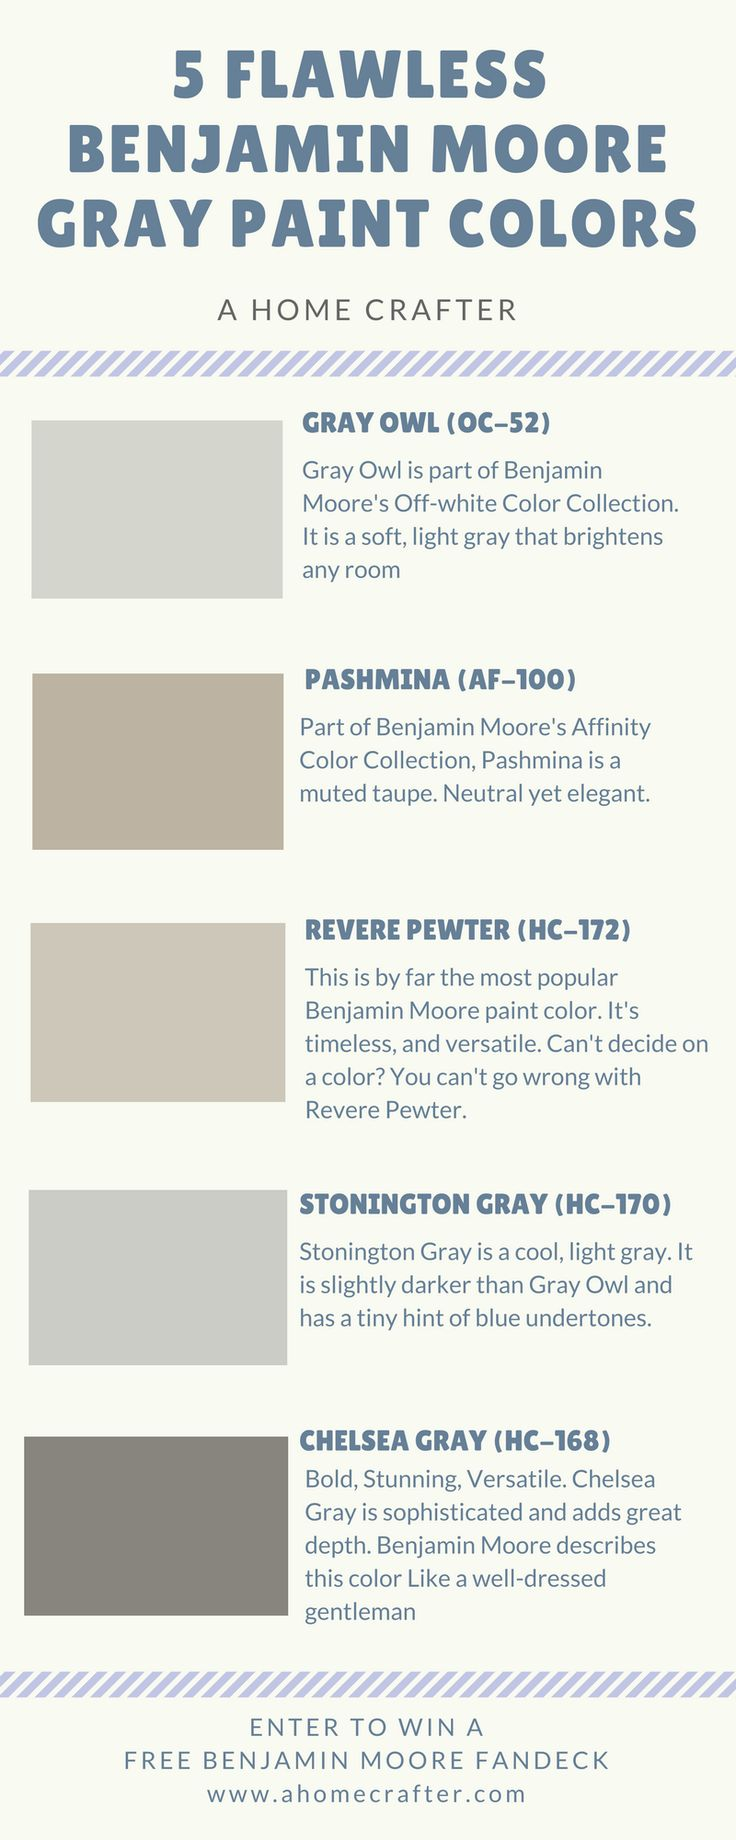 I Personally Love These 5 Benjamin Moore Gray Paint Colors They Are Soft Versatile